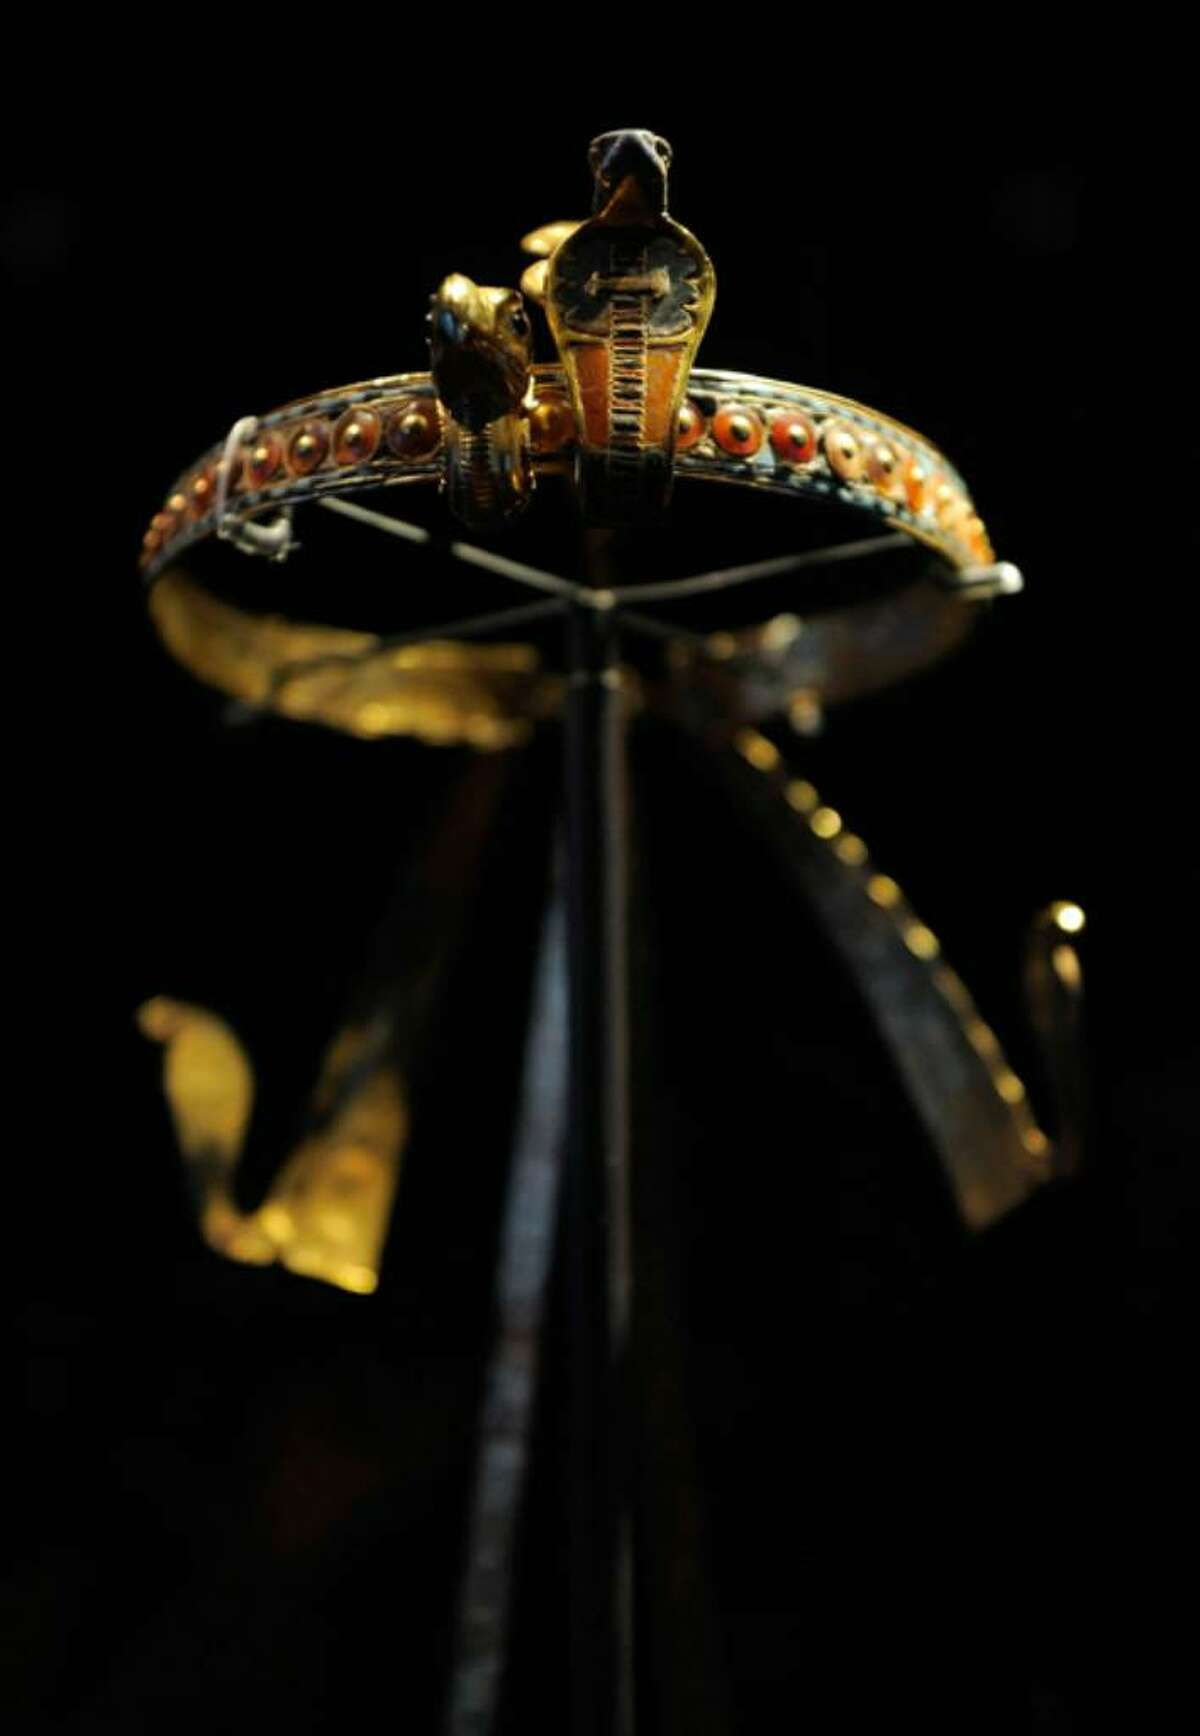 NEW YORK - APRIL 21: A view of the Inlaid Diadem found on the head of the Pharoh Tutankhamun on display during the press preview of the